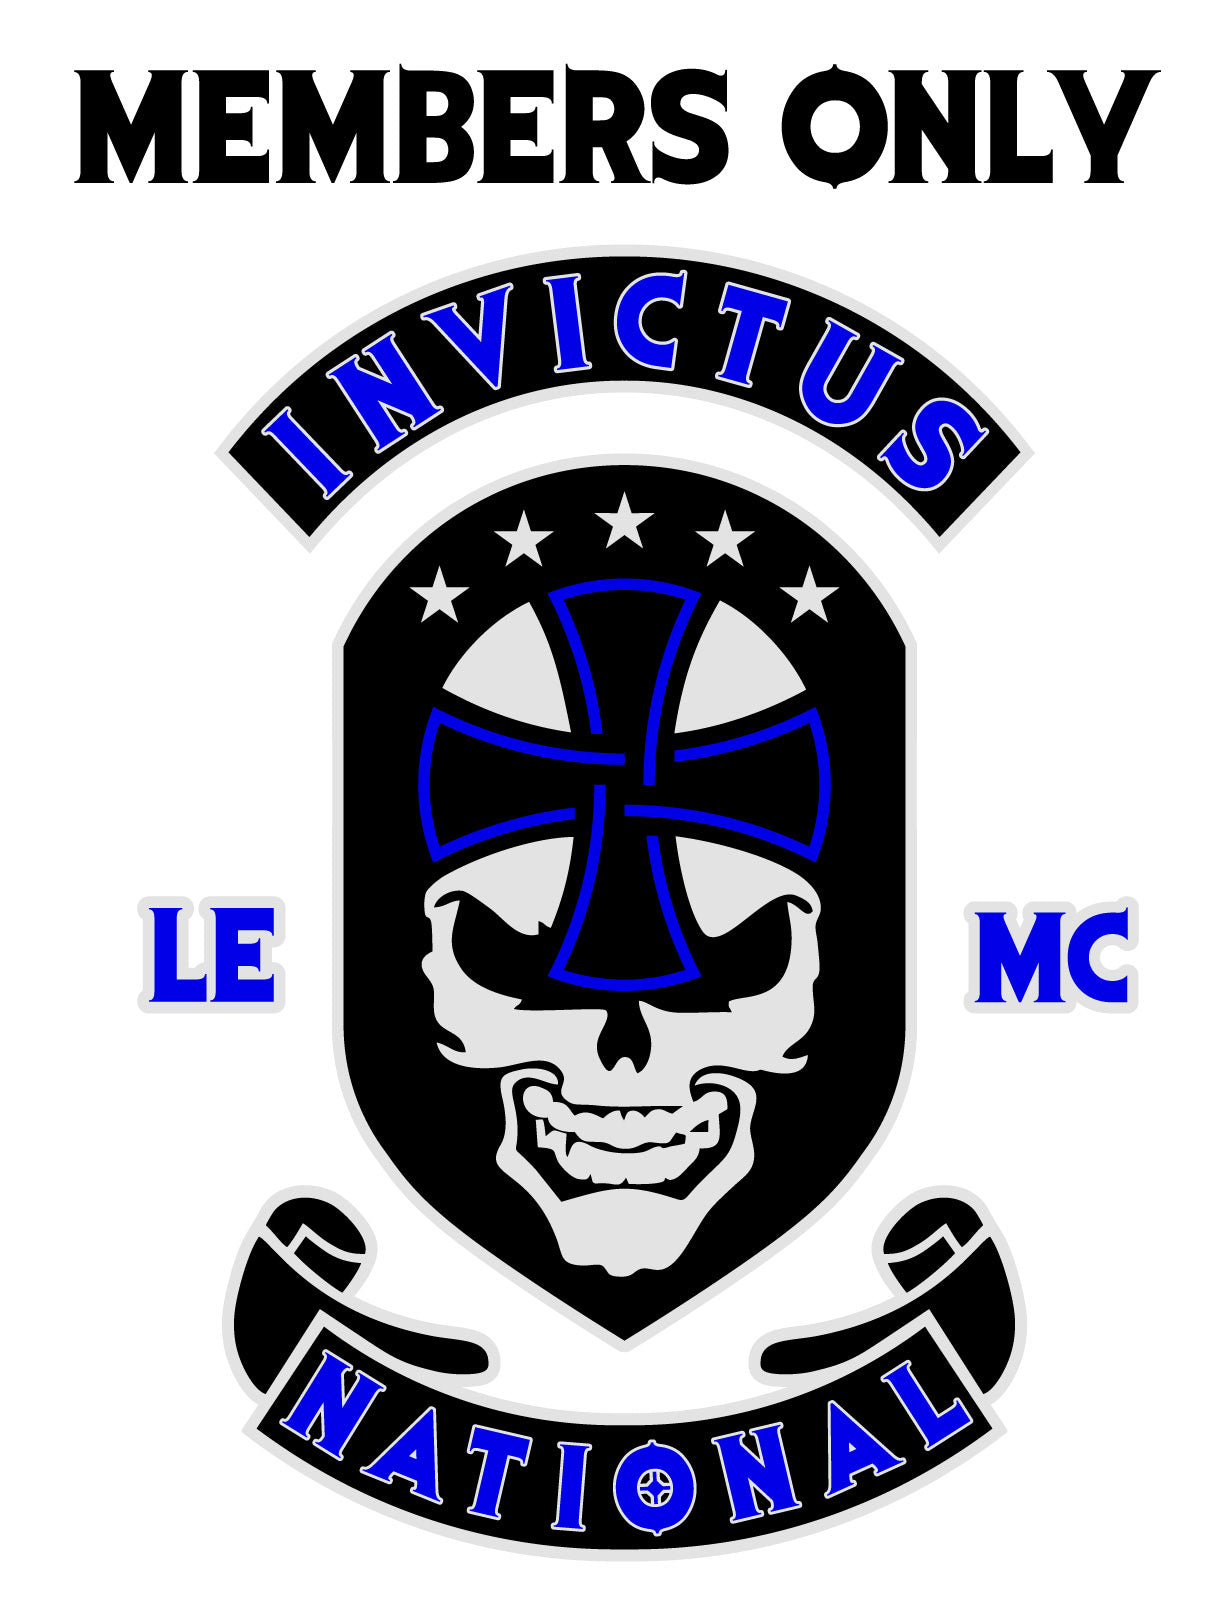 Invictus MEMBERS ONLY